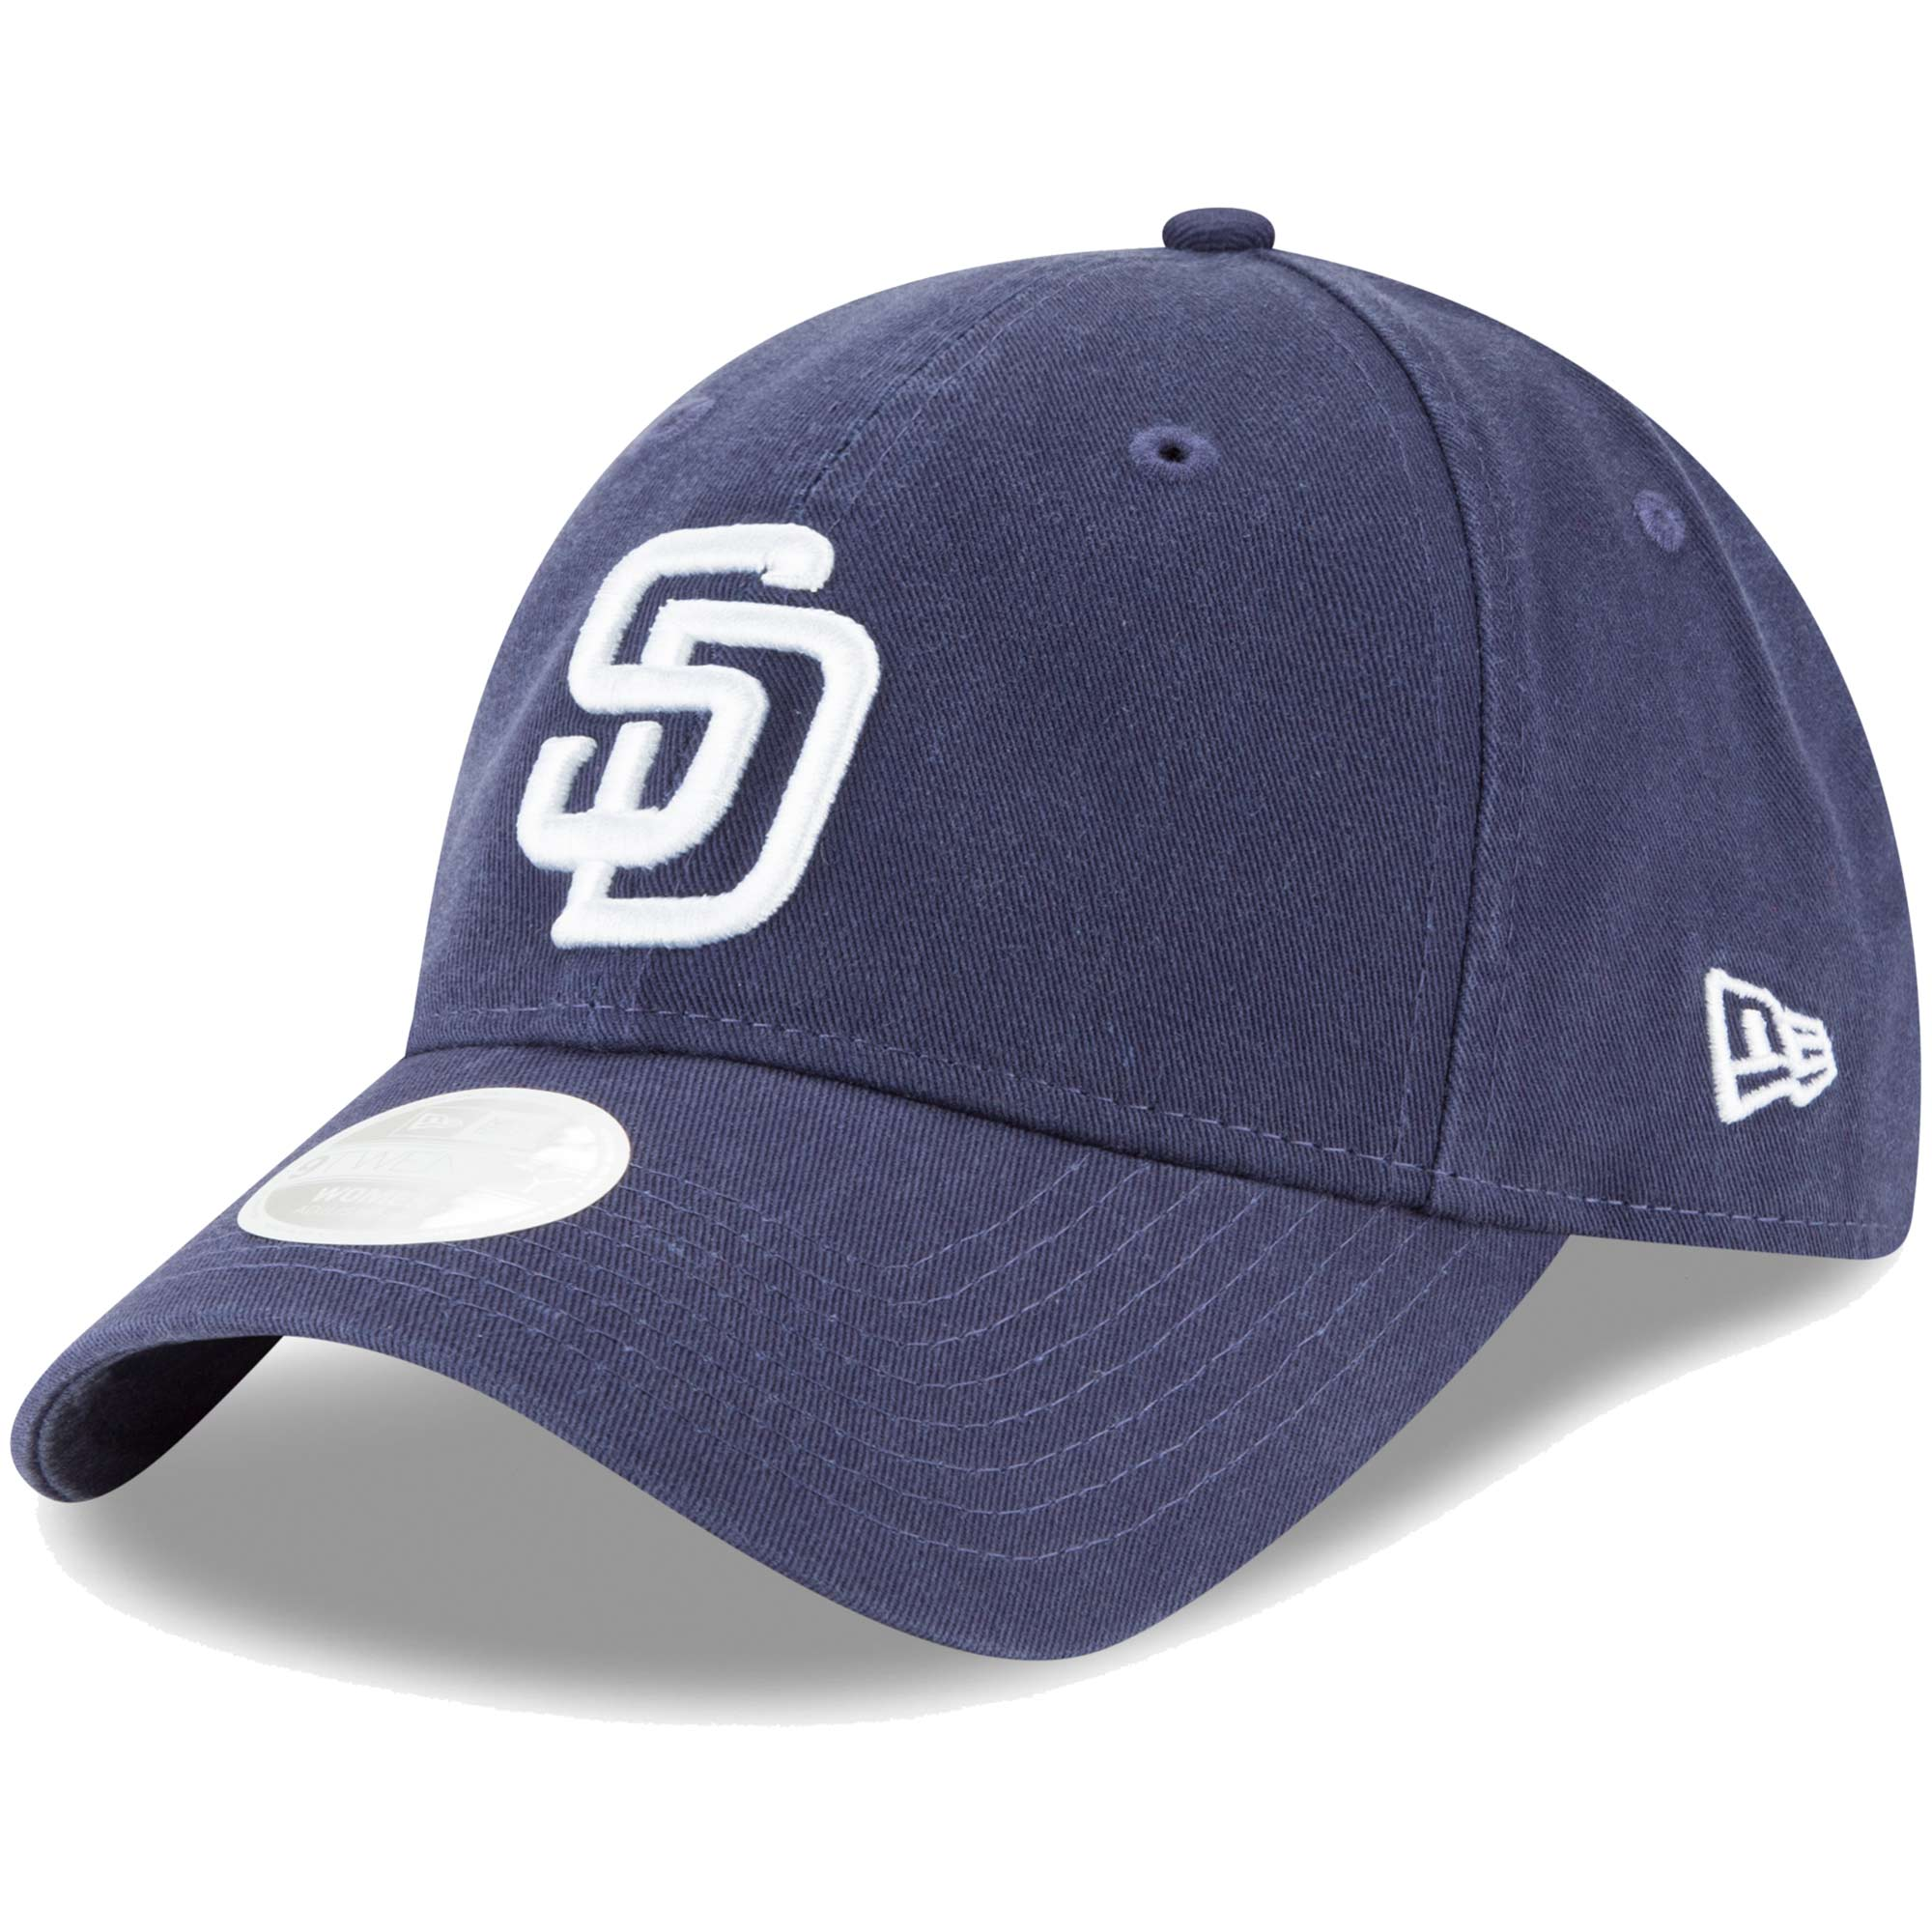 San Diego Padres New Era Women's Core Classic Twill Team Color 9TWENTY Adjustable Hat - Navy - OSFA